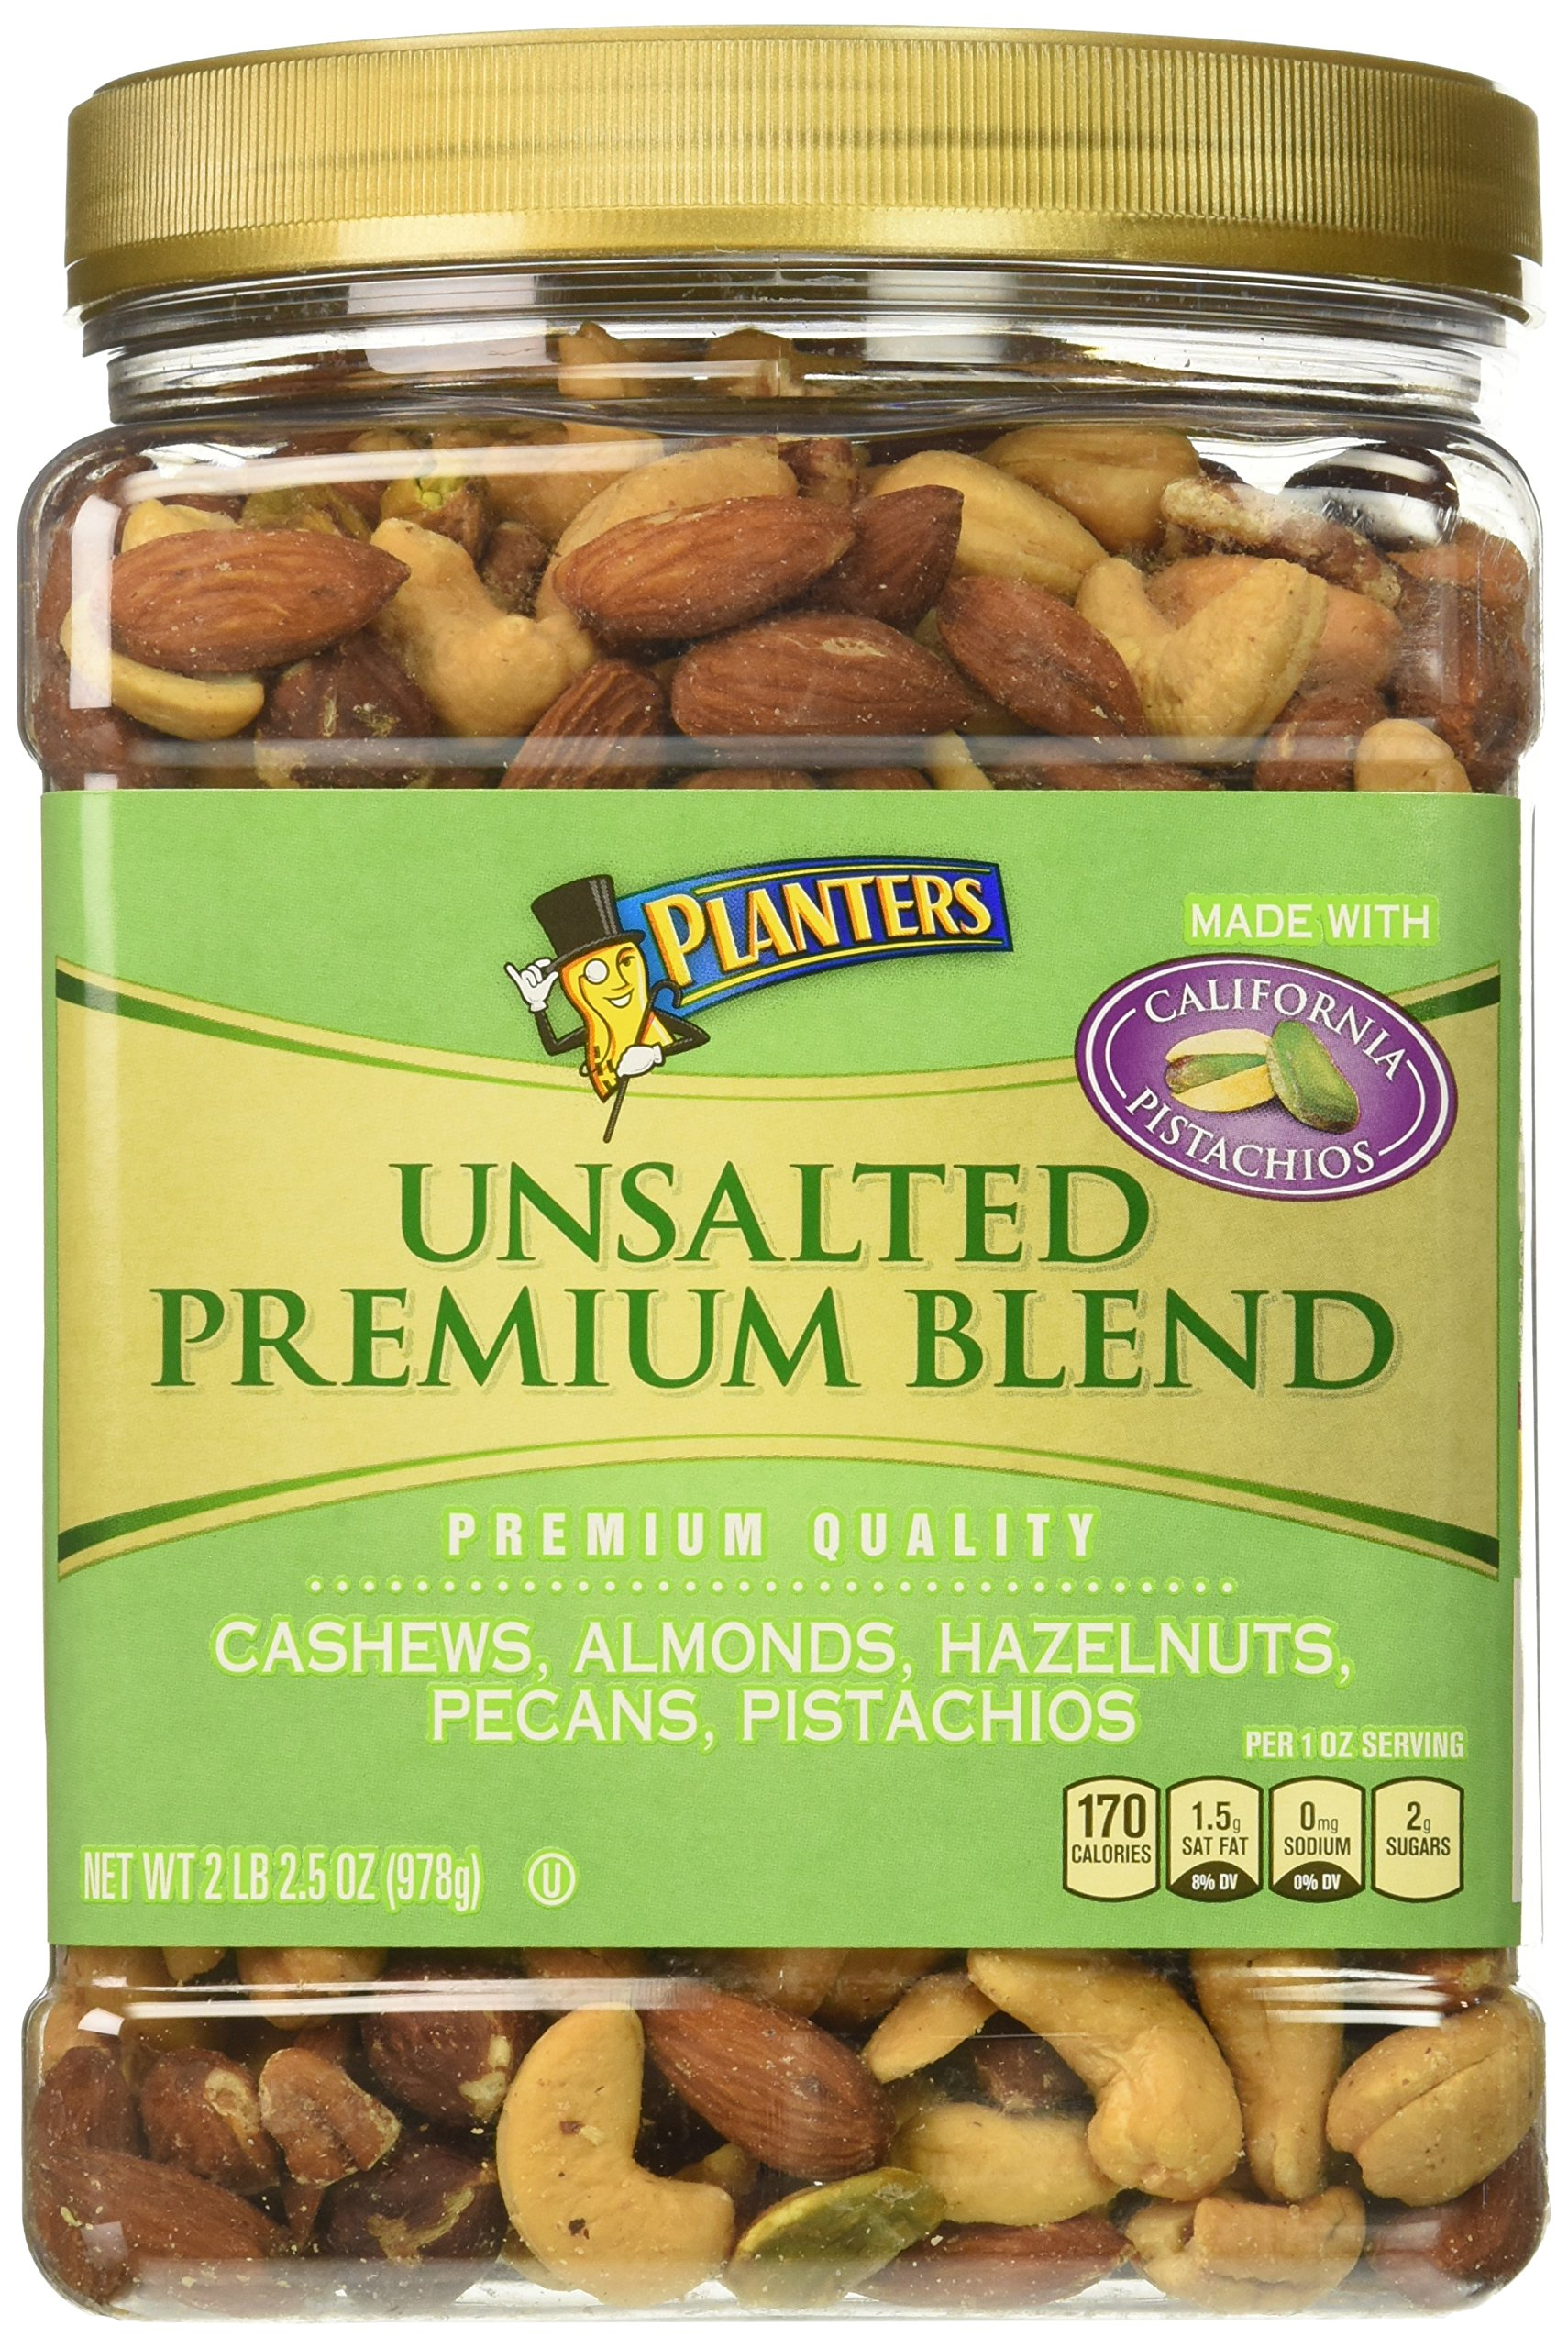 Planters Premium Blend Mixed Nuts, Unsalted, 34.5 Ounce Jar